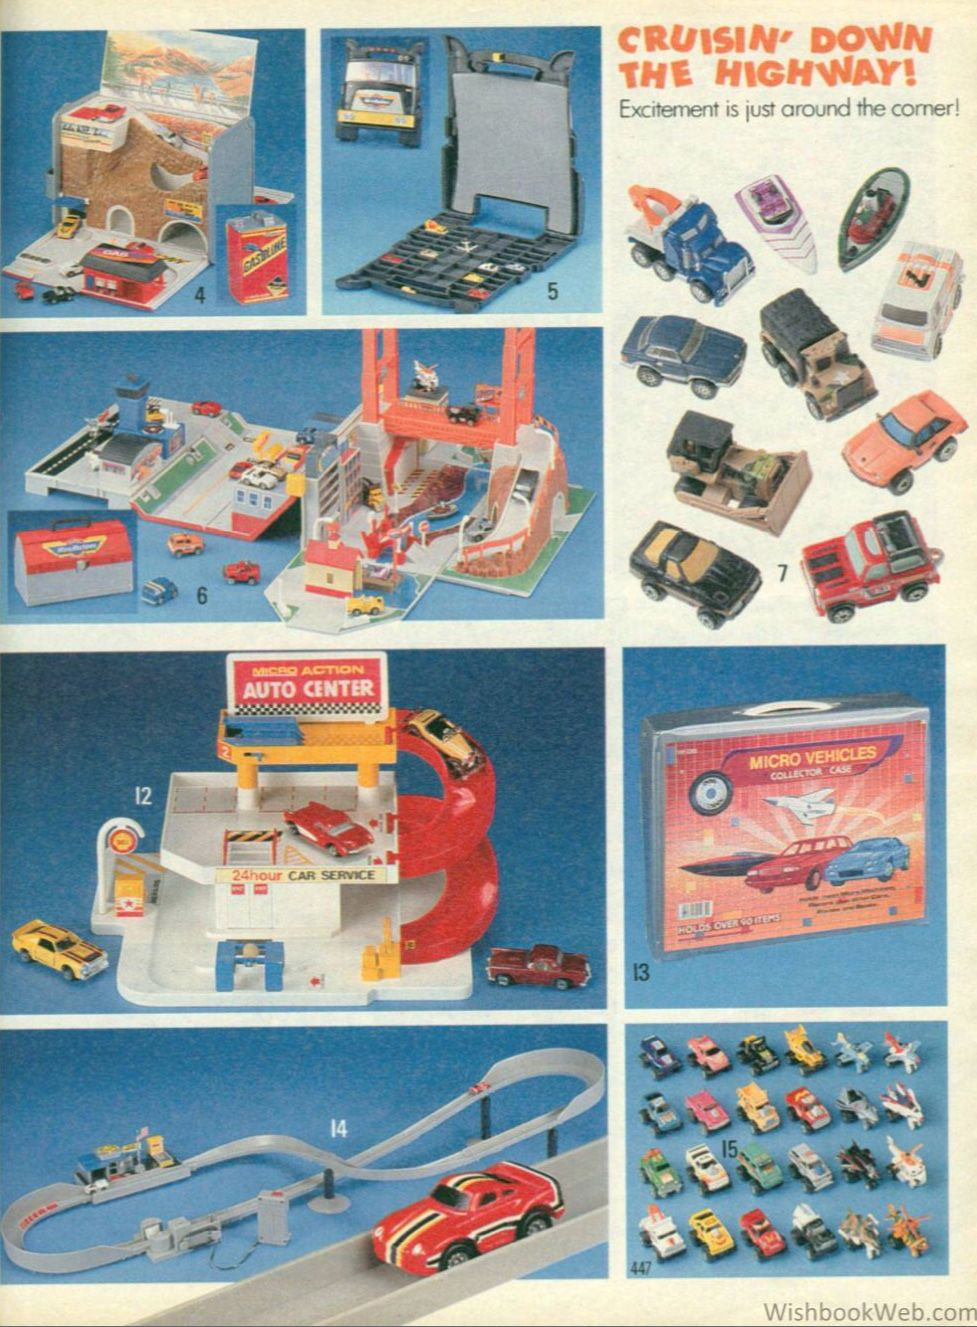 90s car toys  Pin by Felicia Drexel on Wishbook Toy Holiday Wonderland  Pinterest